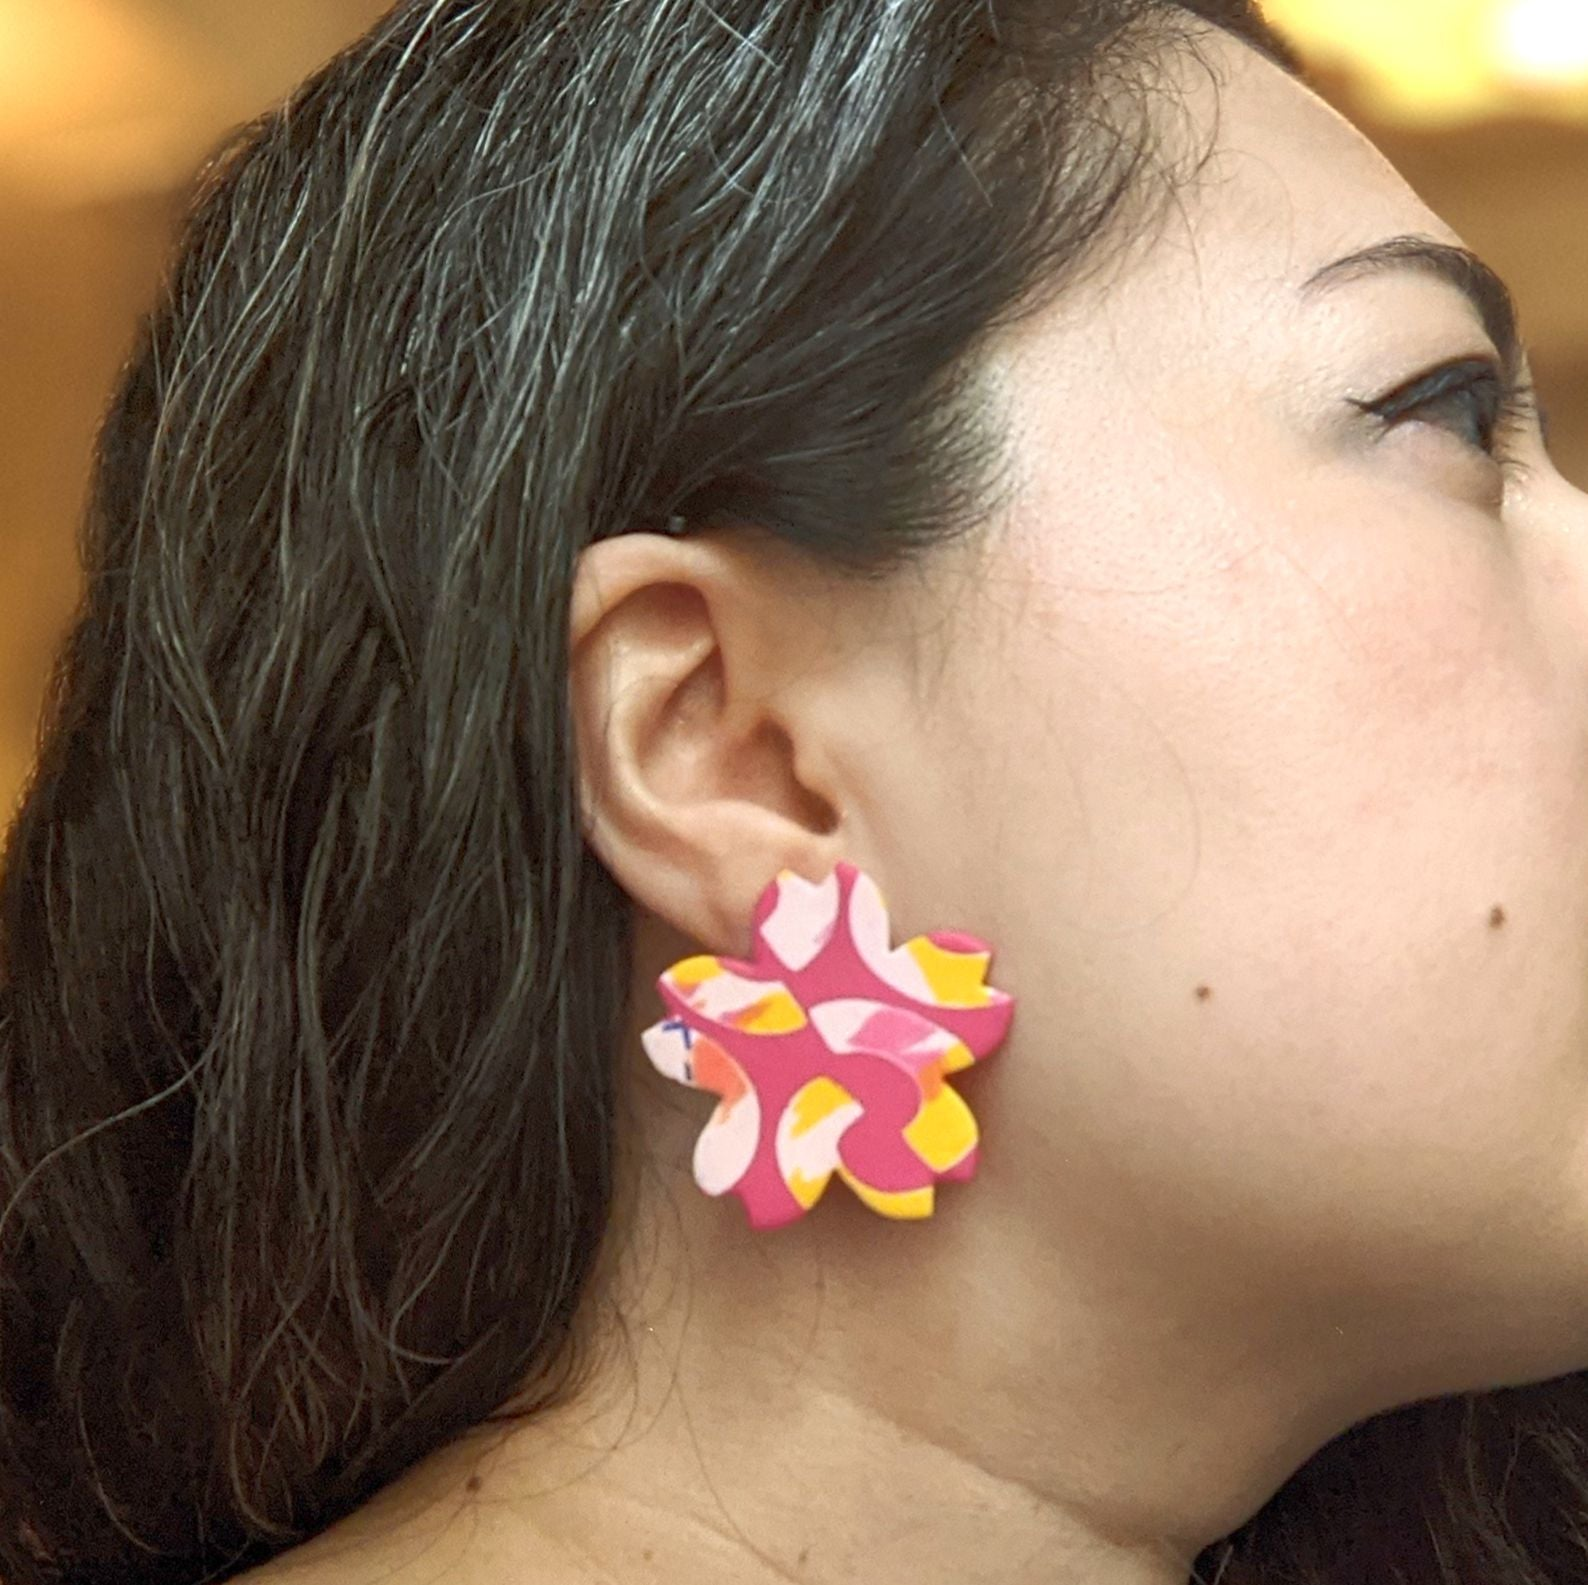 Peak Bloom Cherry Bomb Earrings